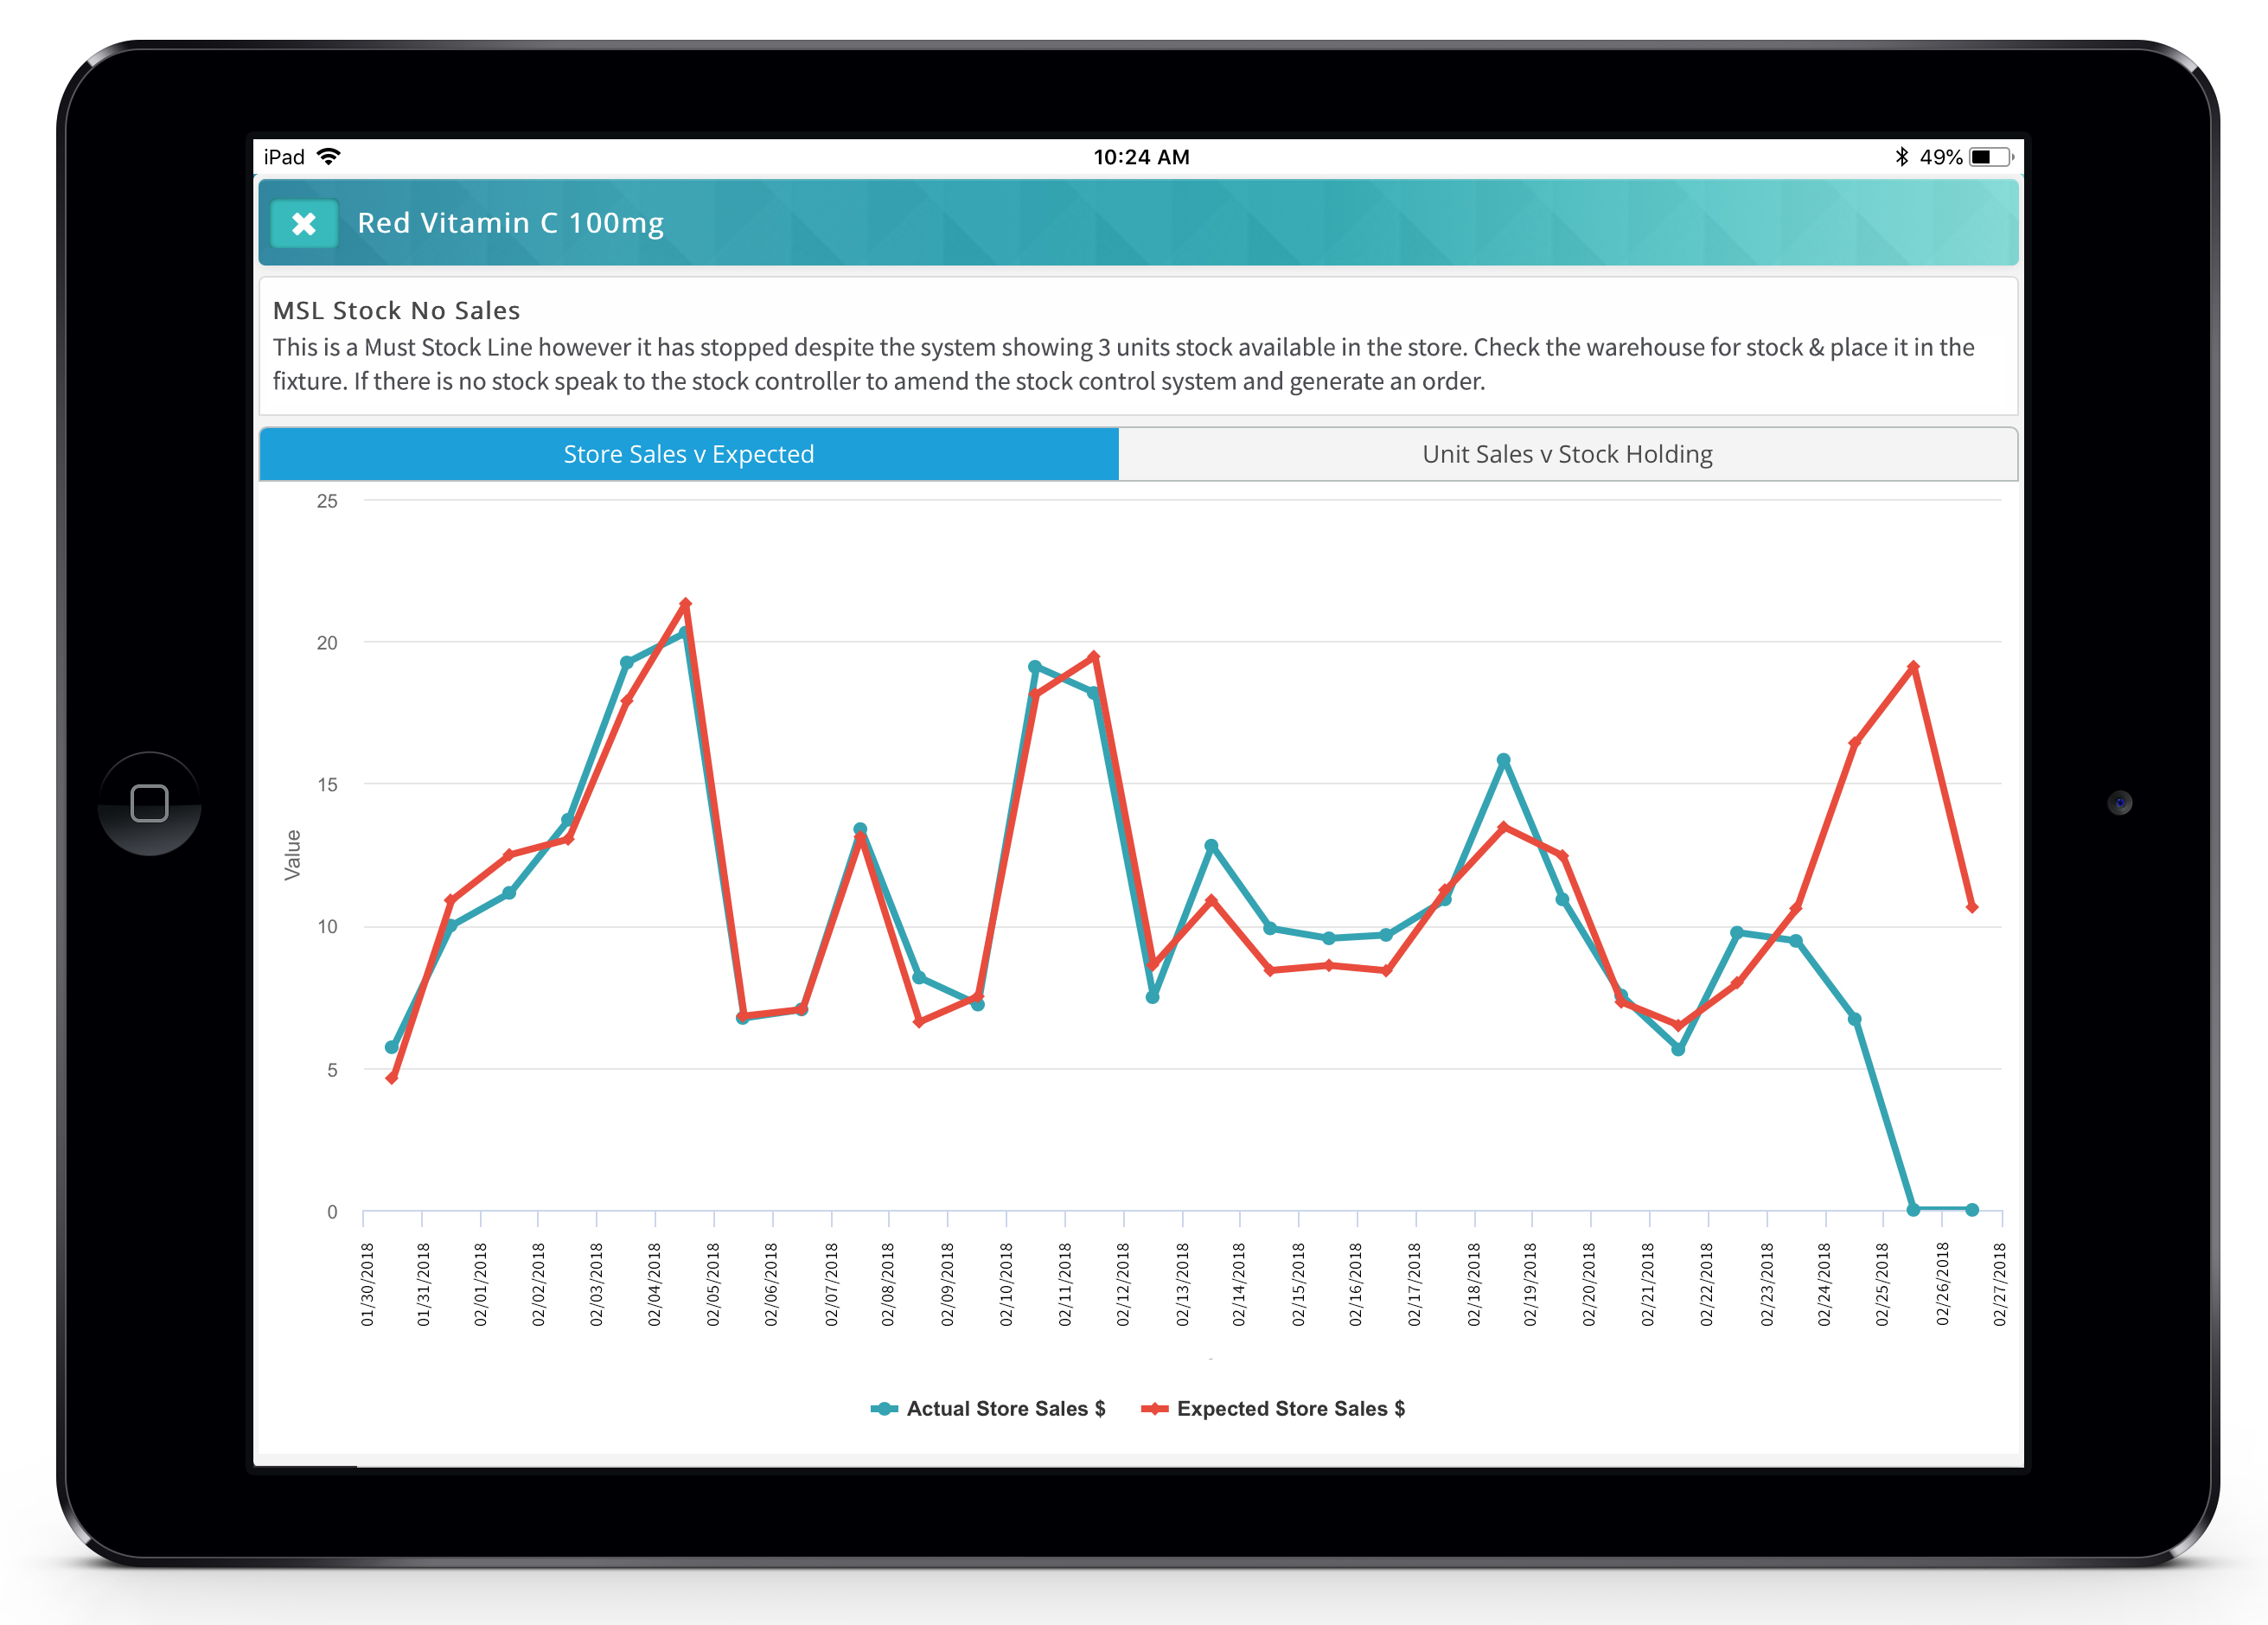 Electronic Point of Sale (EPoS) data provided by 20:20 Retail Data Insight